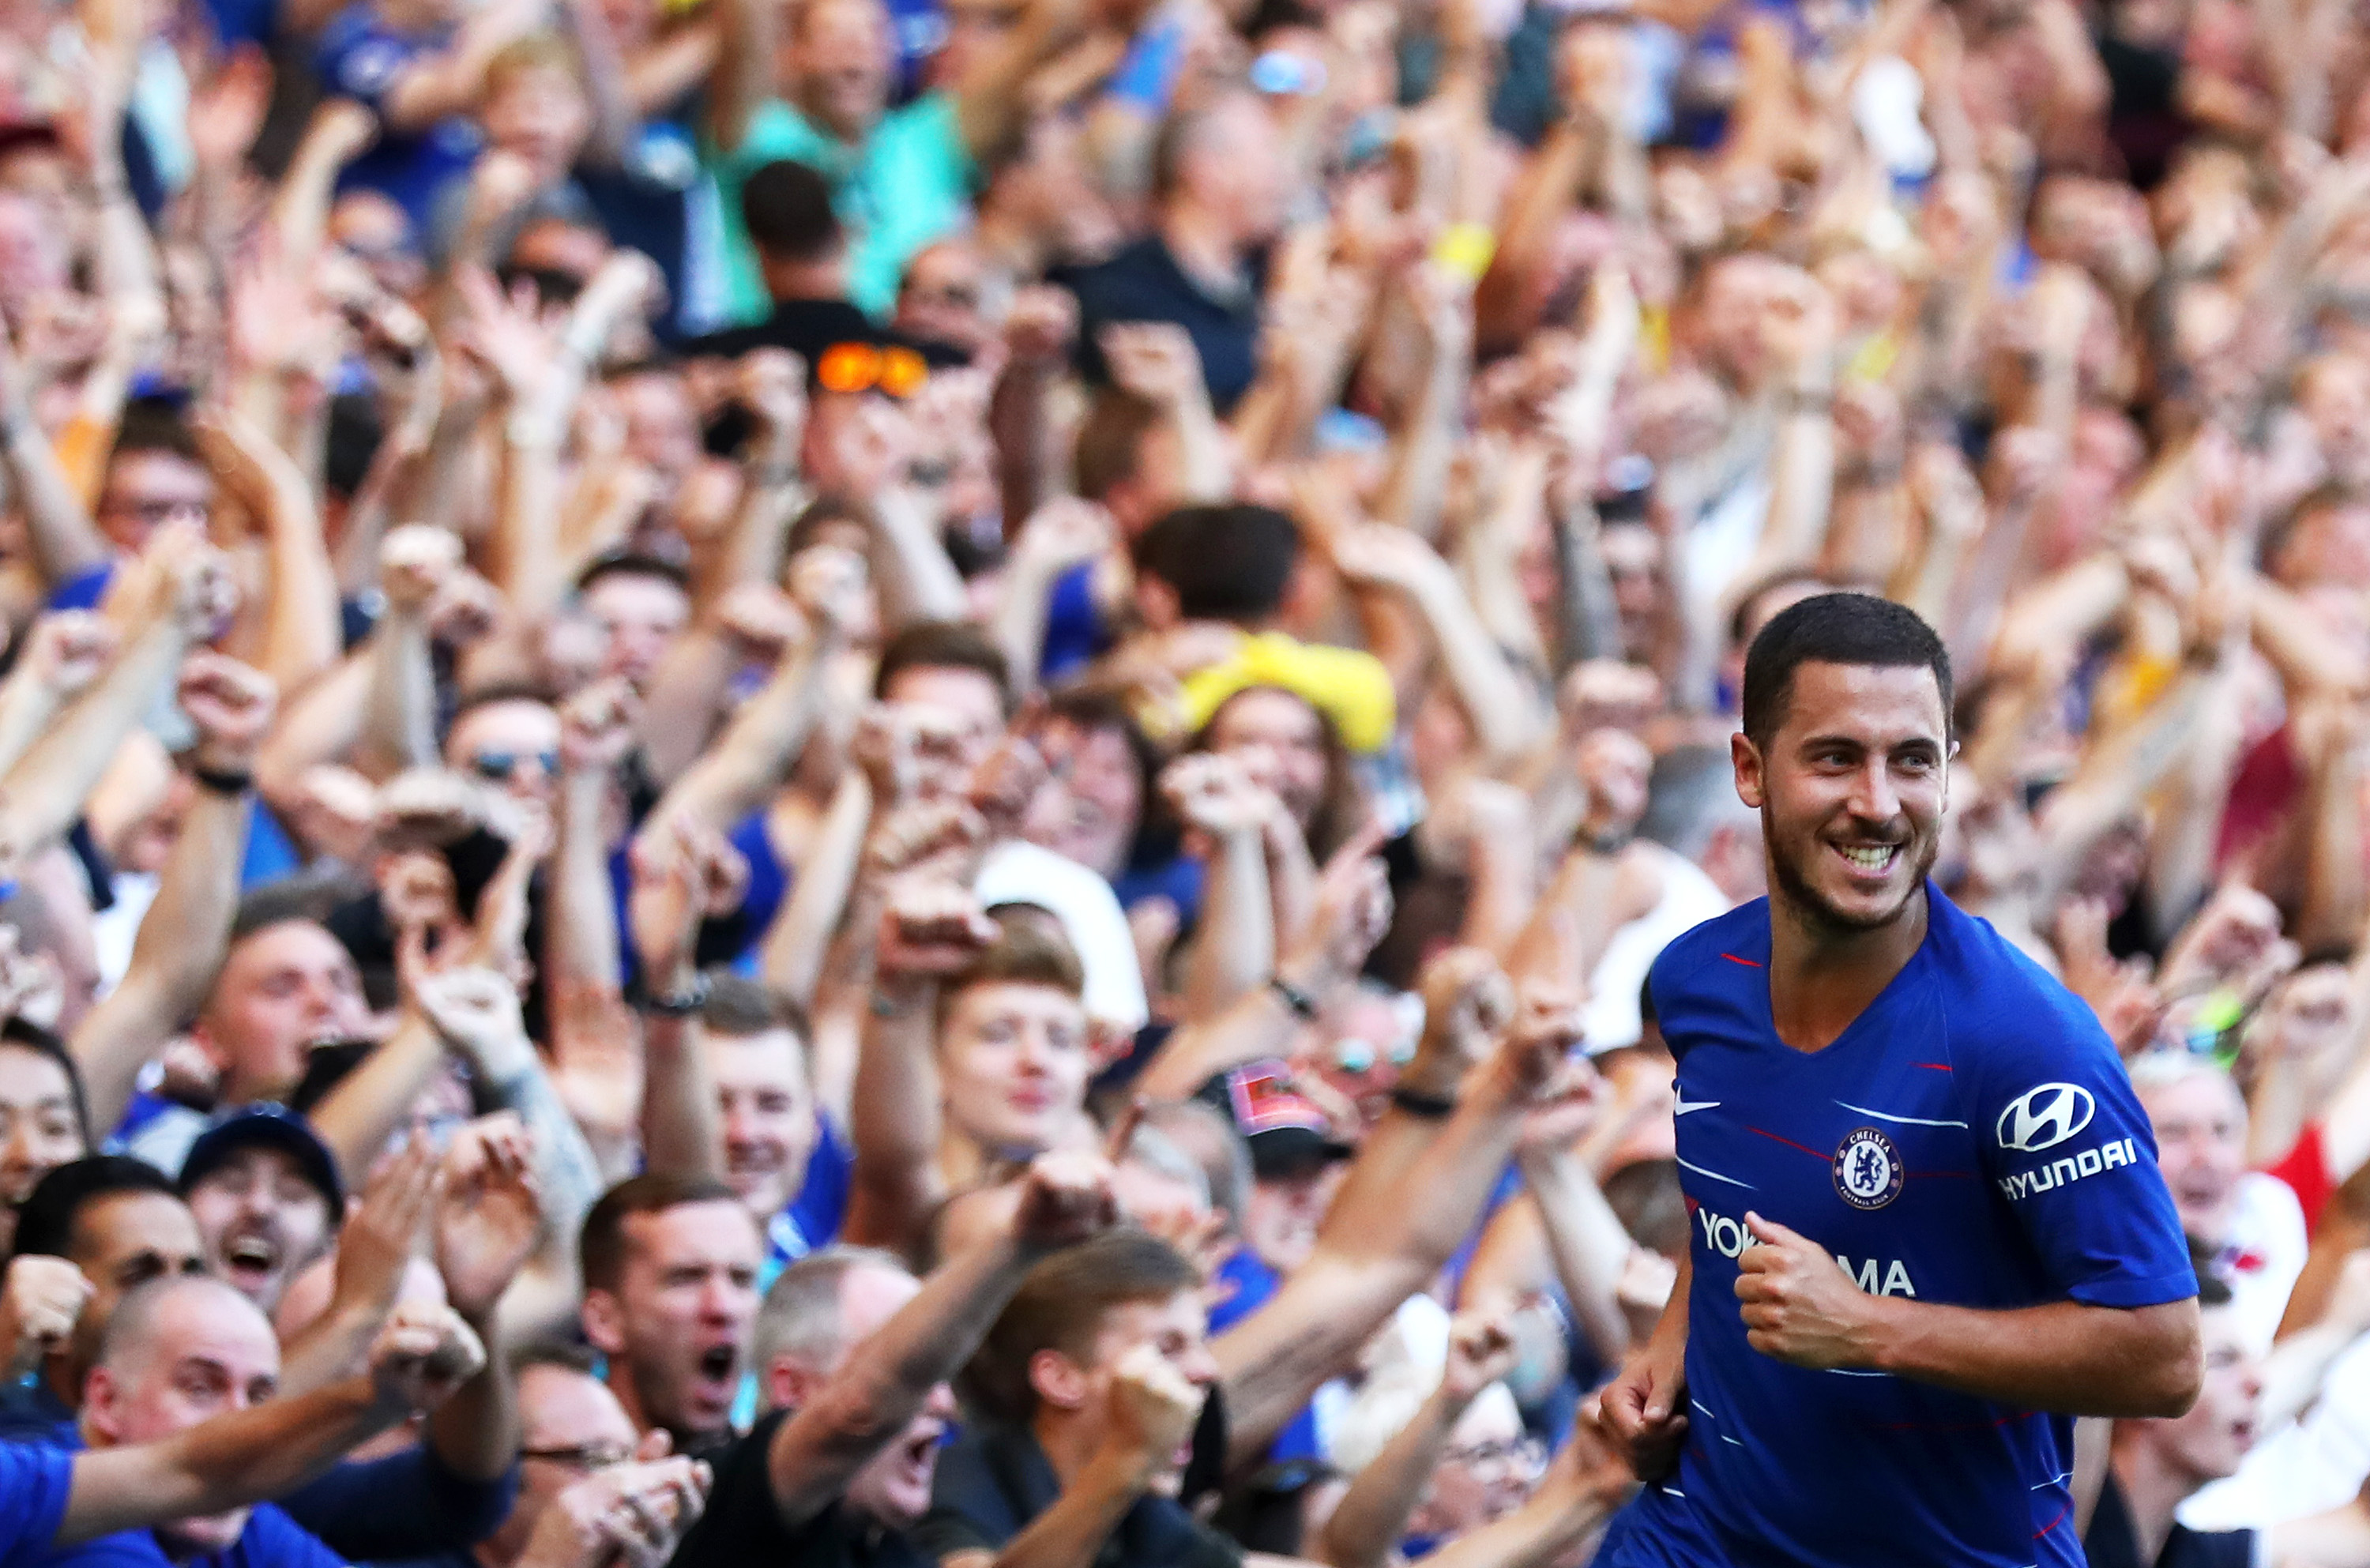 Chelsea want to keep Hazard, confident he will sign new deal